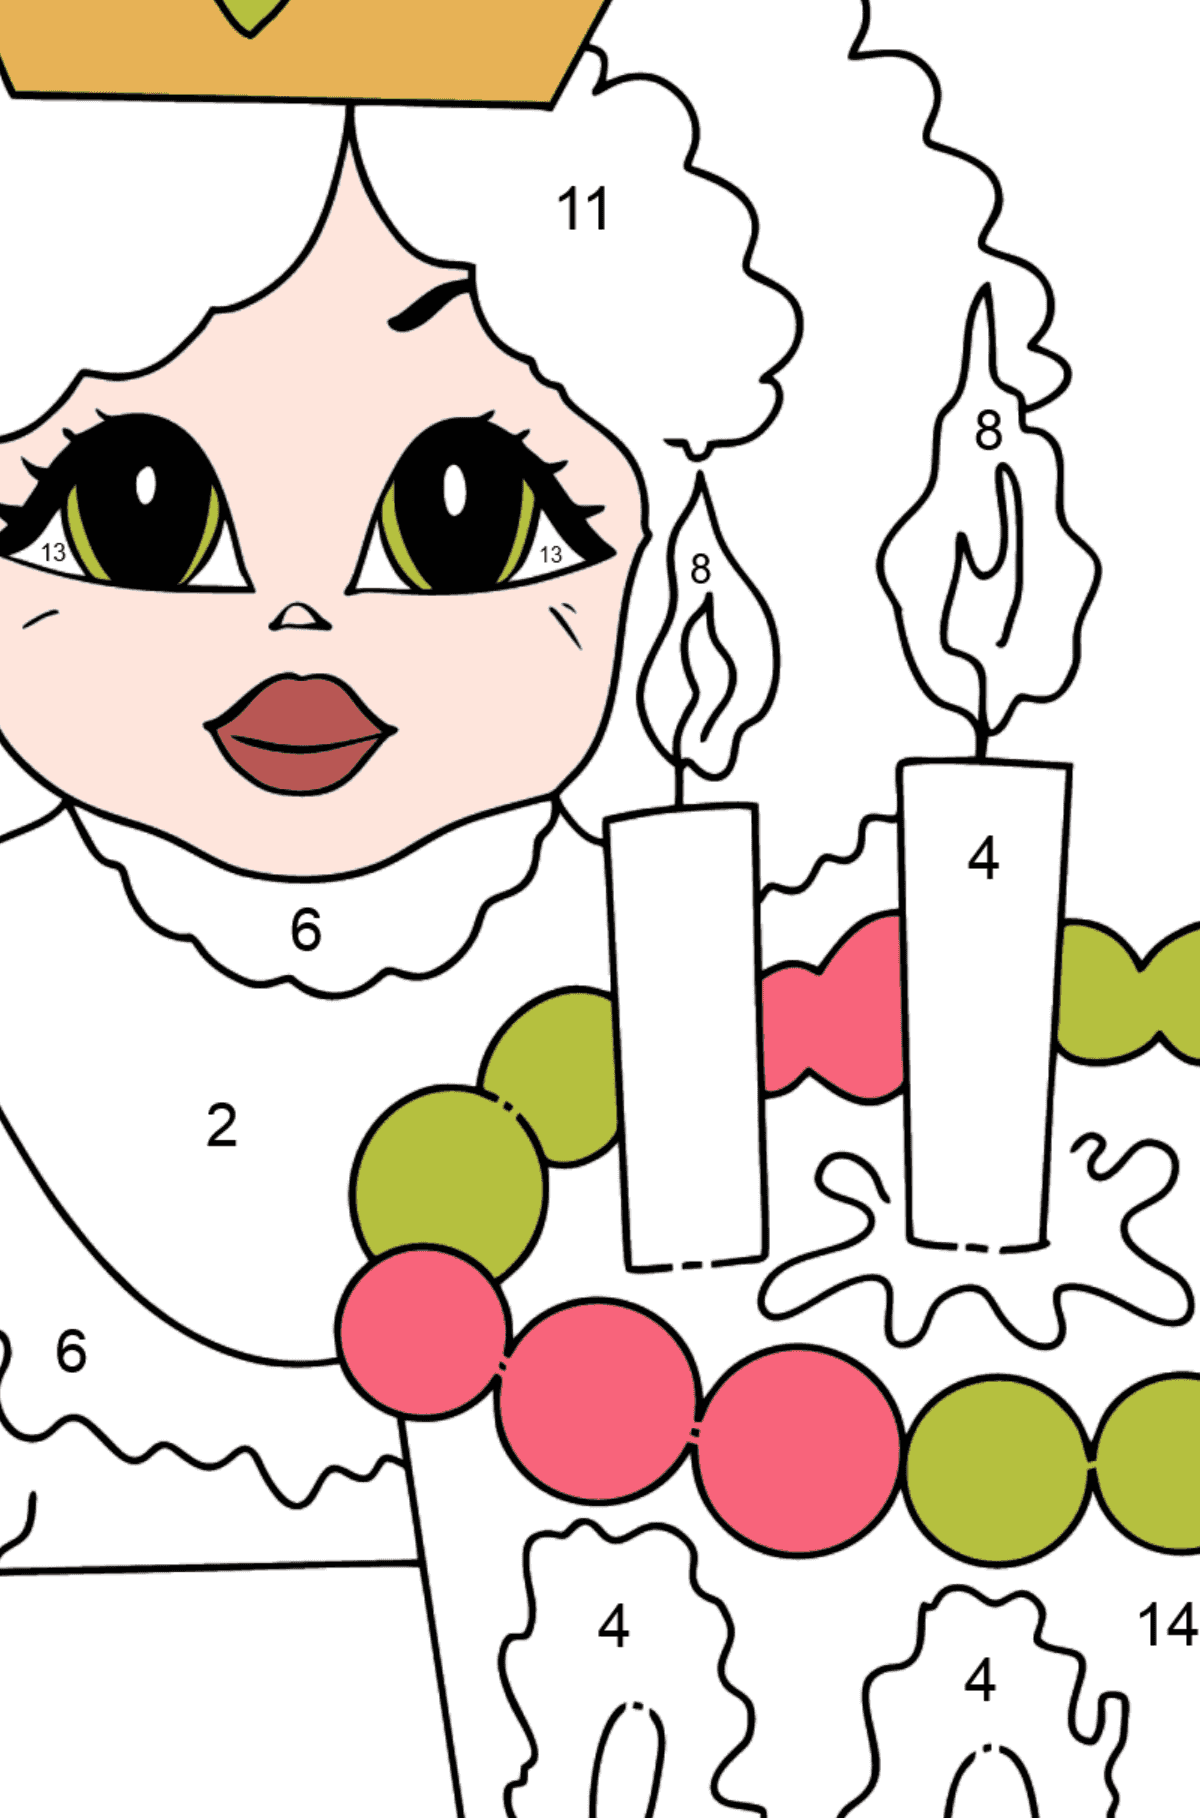 Coloring Picture - A Princess with Cake - Coloring by Numbers for Kids